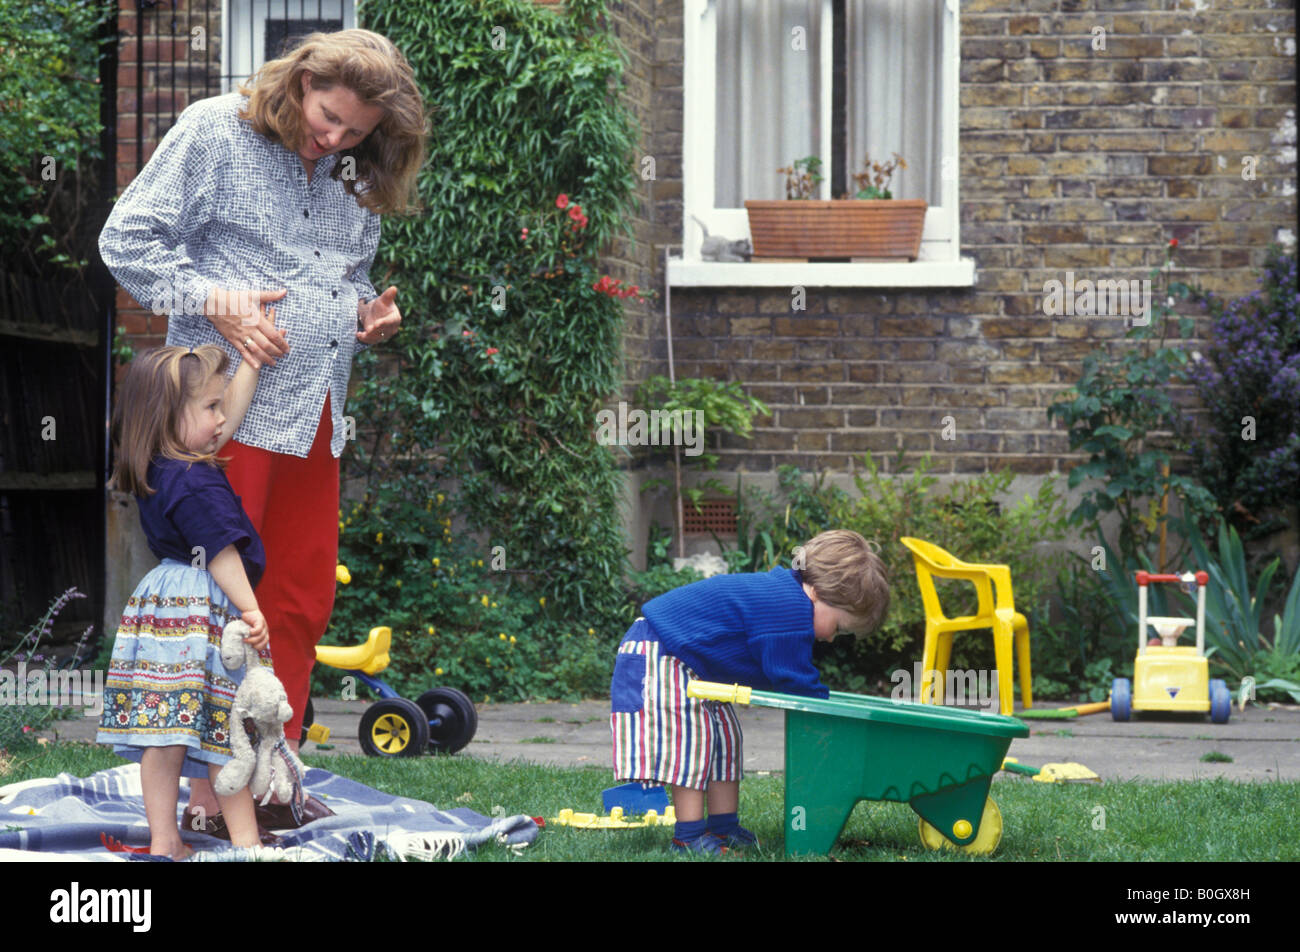 pregnant woman coping with two children in the garden - Stock Image